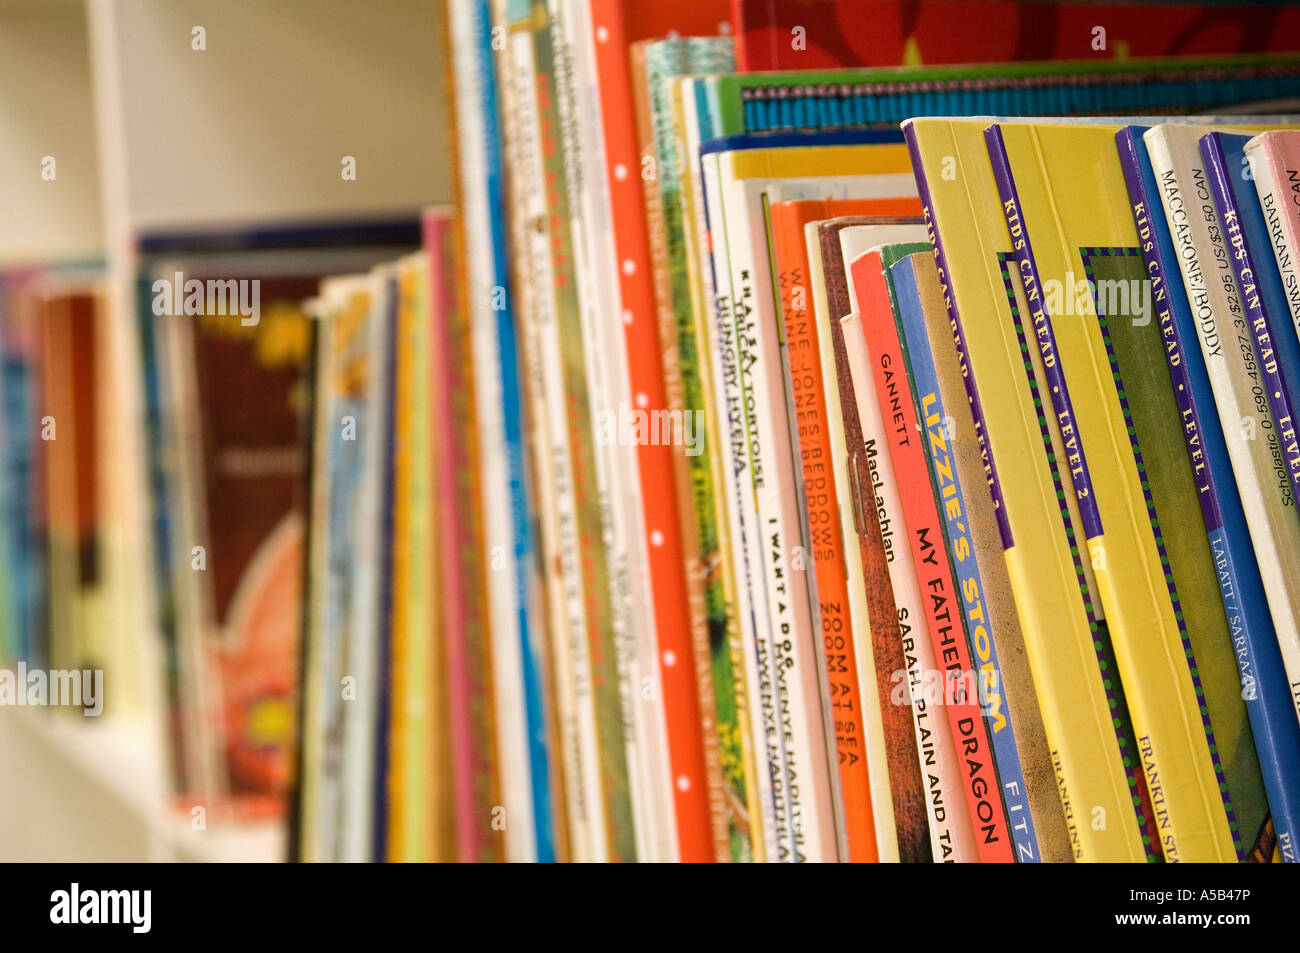 Childrens Books On Shelf Of School Library Stock Photo 11256537